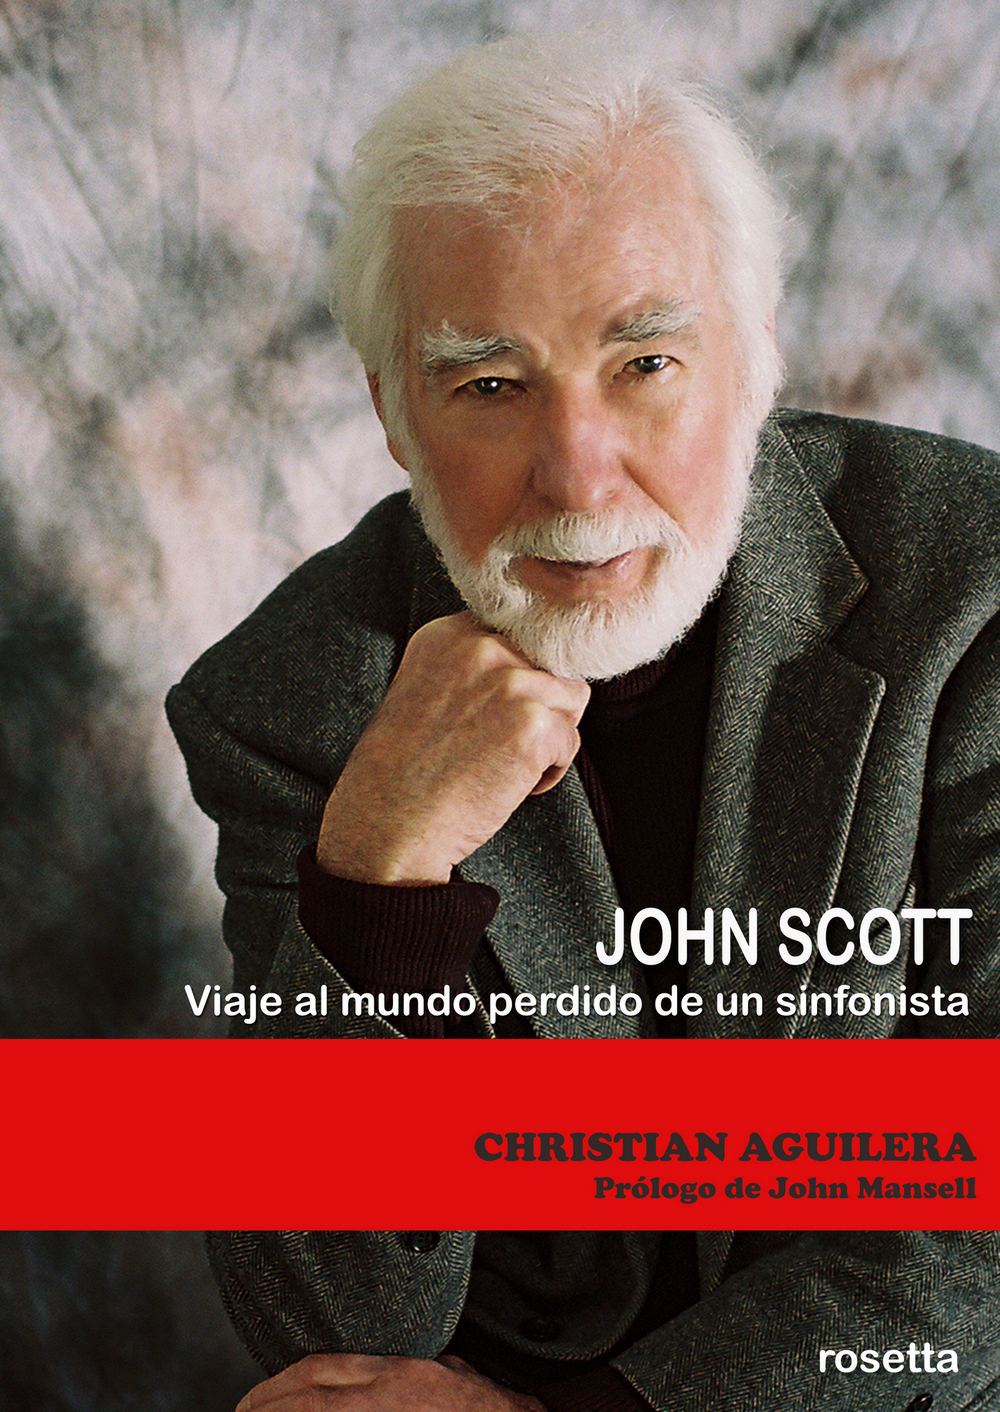 Book 'John Scott, Journey to the Lost World of a Symphonist